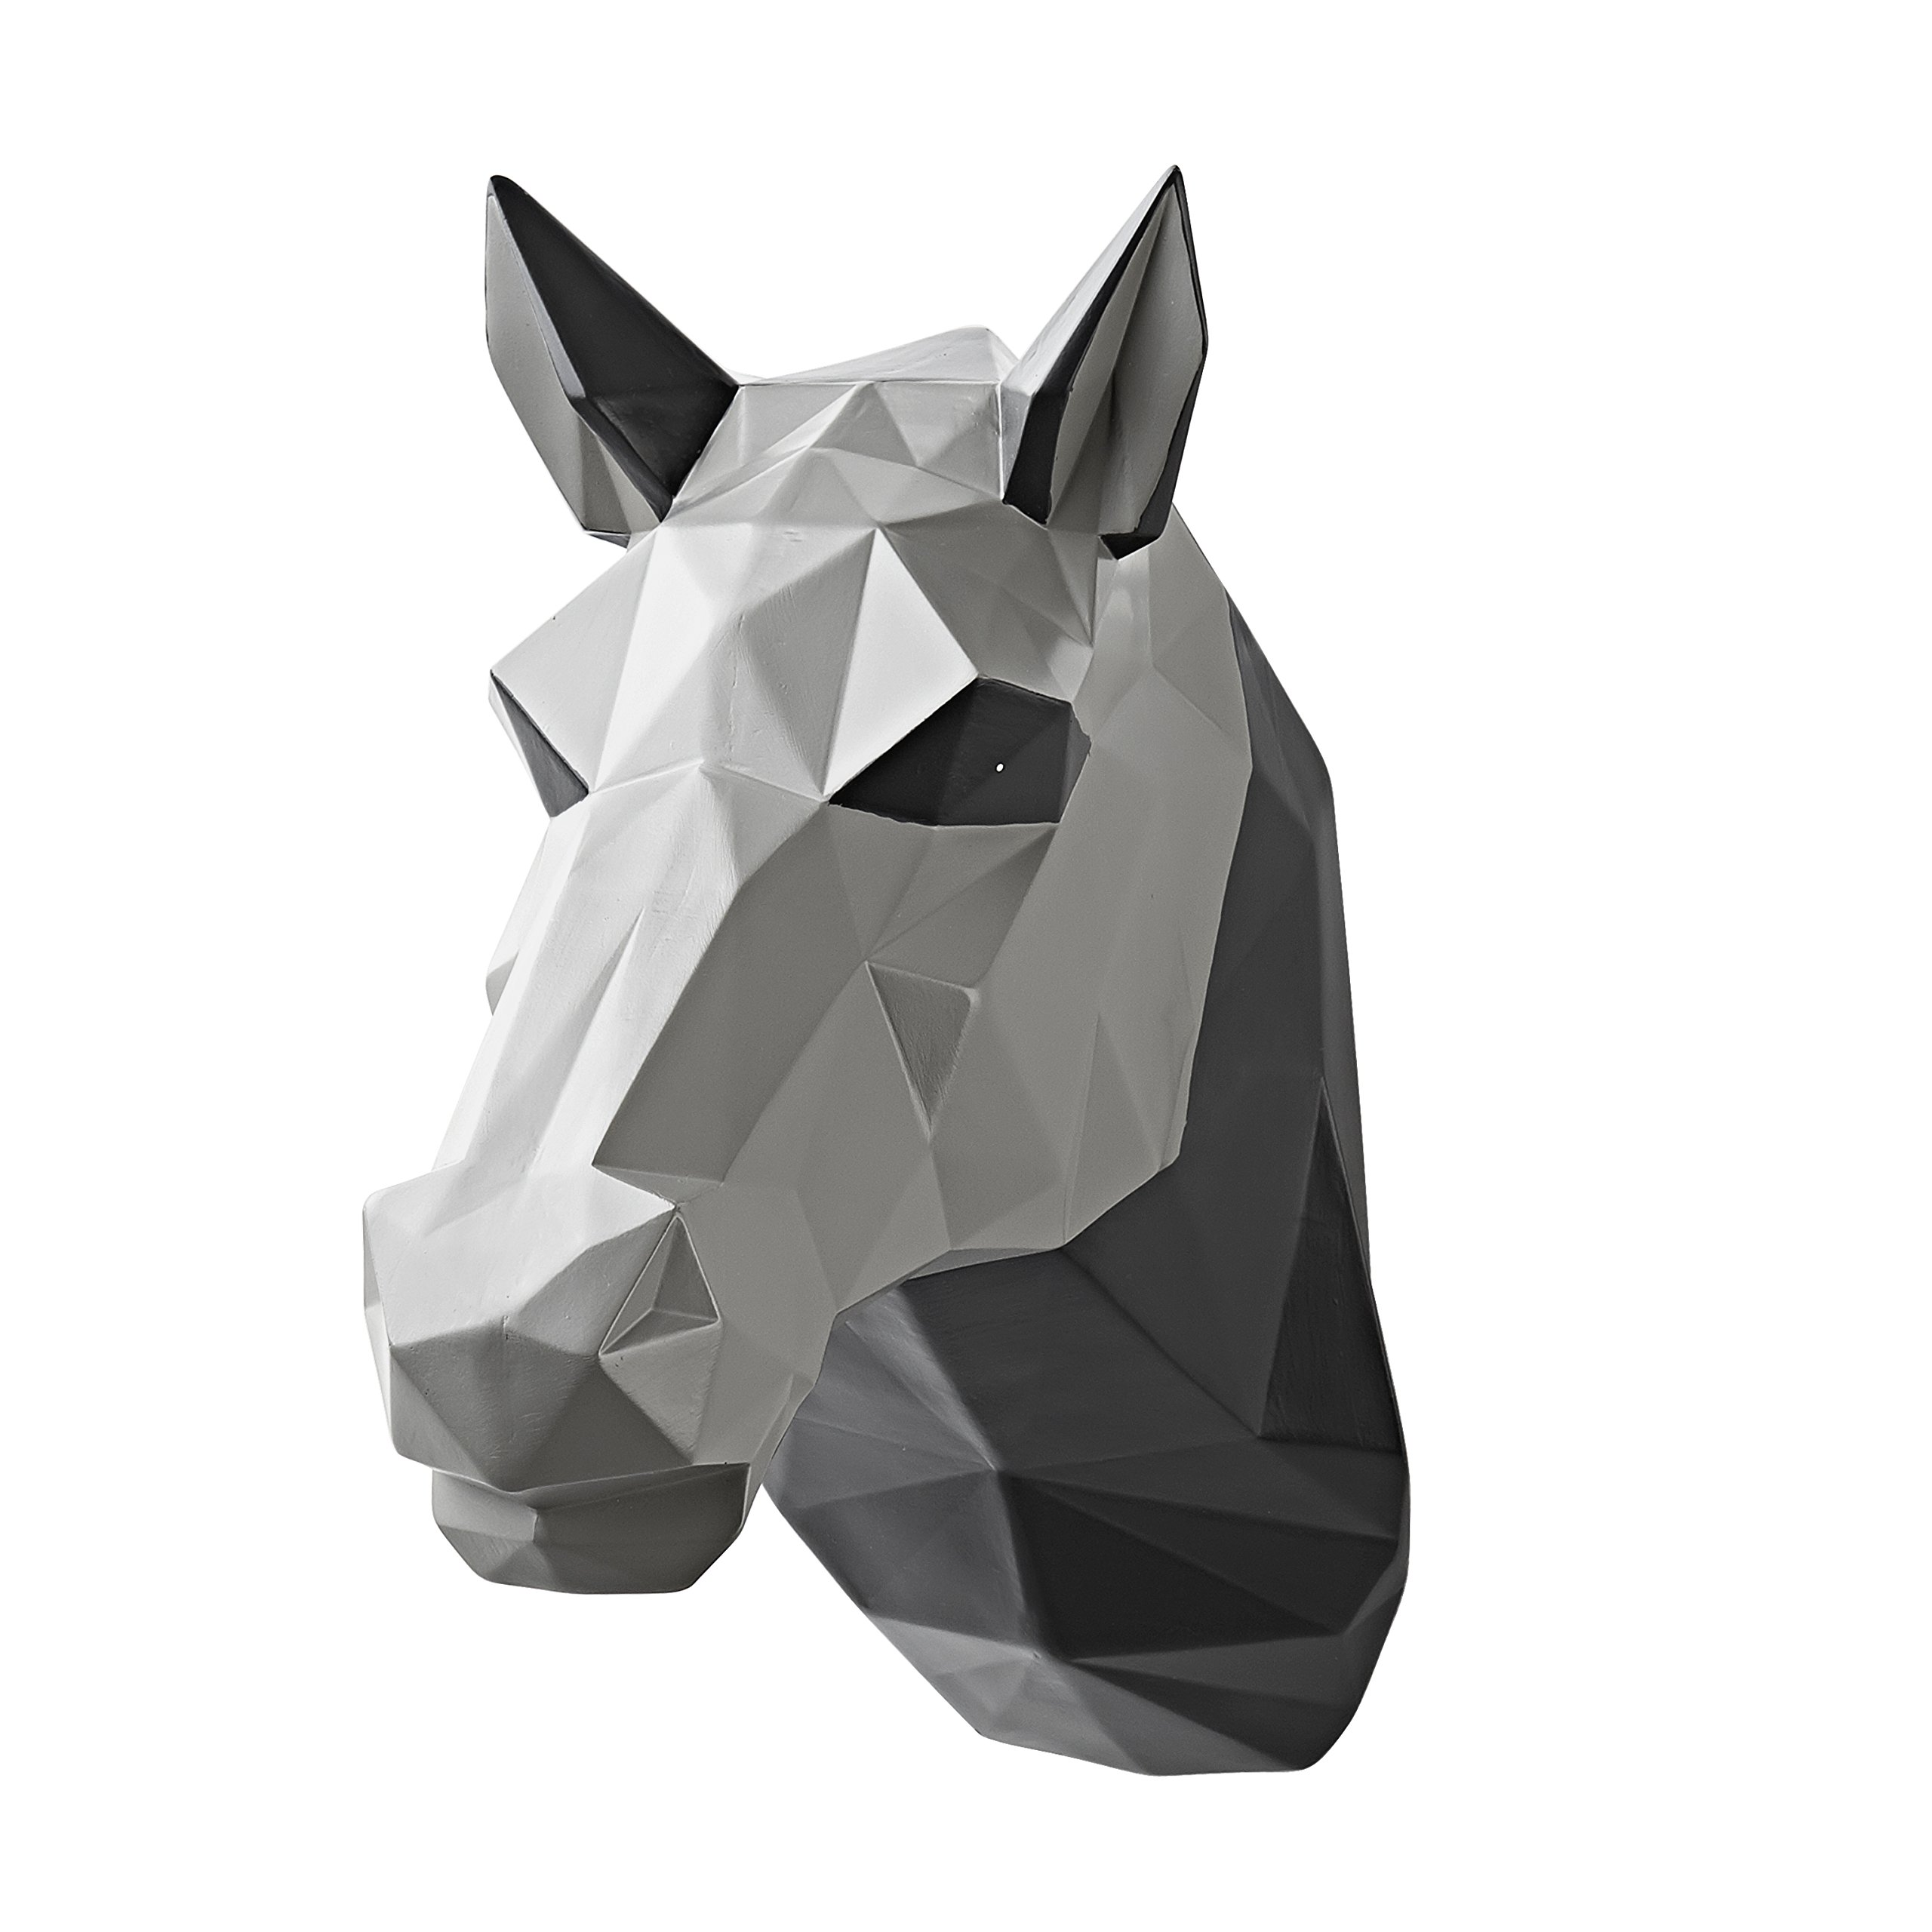 Vistella 3D Horse Head Wall Art Decor - Modern Origami Wall Mountable Resin Animal Head - Multi Tone Digital Pixel Design - Home Indoor Abstract Decorative Sculpture